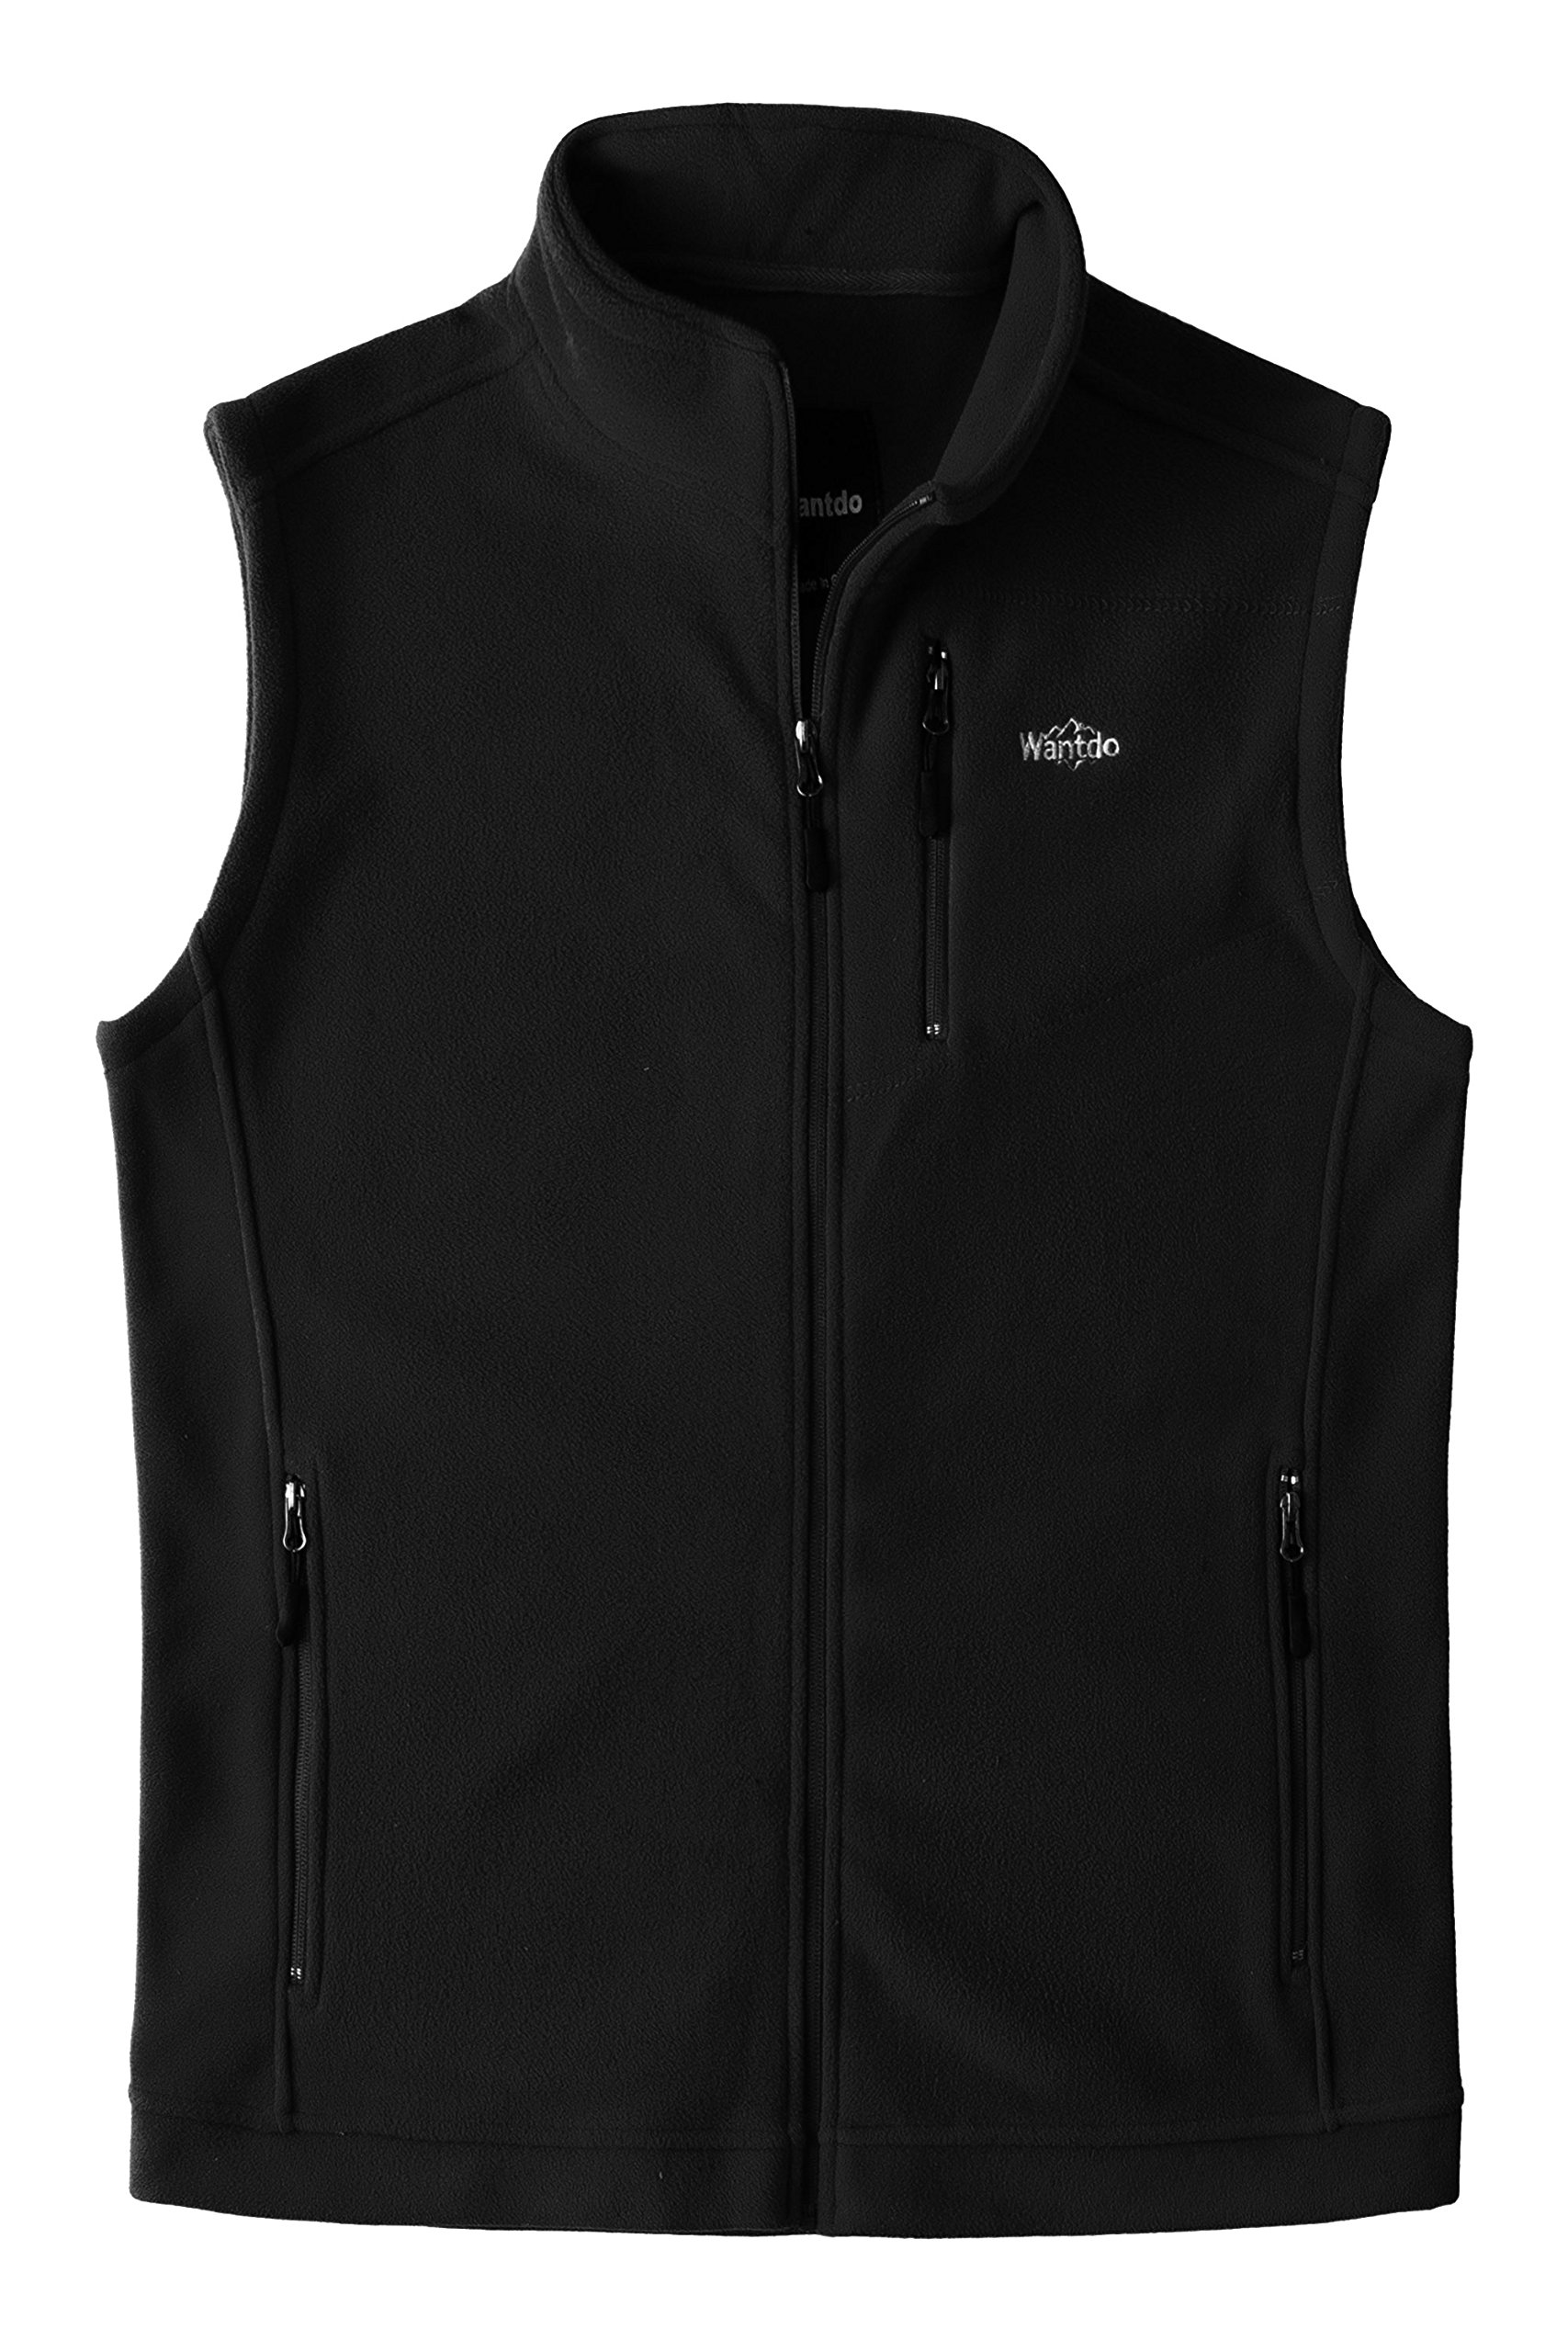 Wantdo Men's Outdoor Full Zipper Fleece Vest Black M by Wantdo